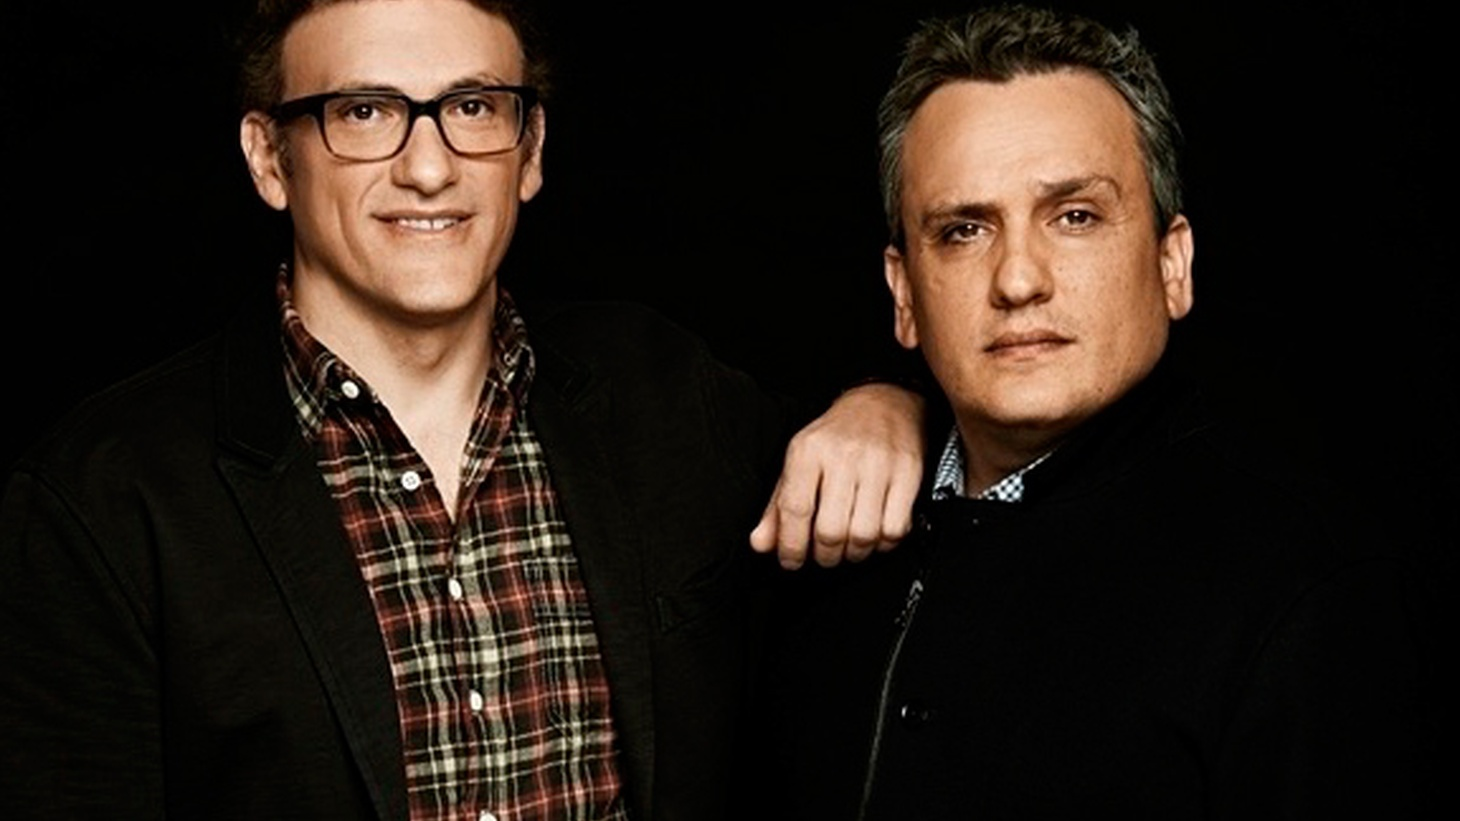 Marvel's newest blockbuster has so many super-characters, it's no wonder it took two directors to handle all the action. Brothers Anthony and Joe Russo tell us how they went from directing quirky TV shows to big-budget superhero movies.